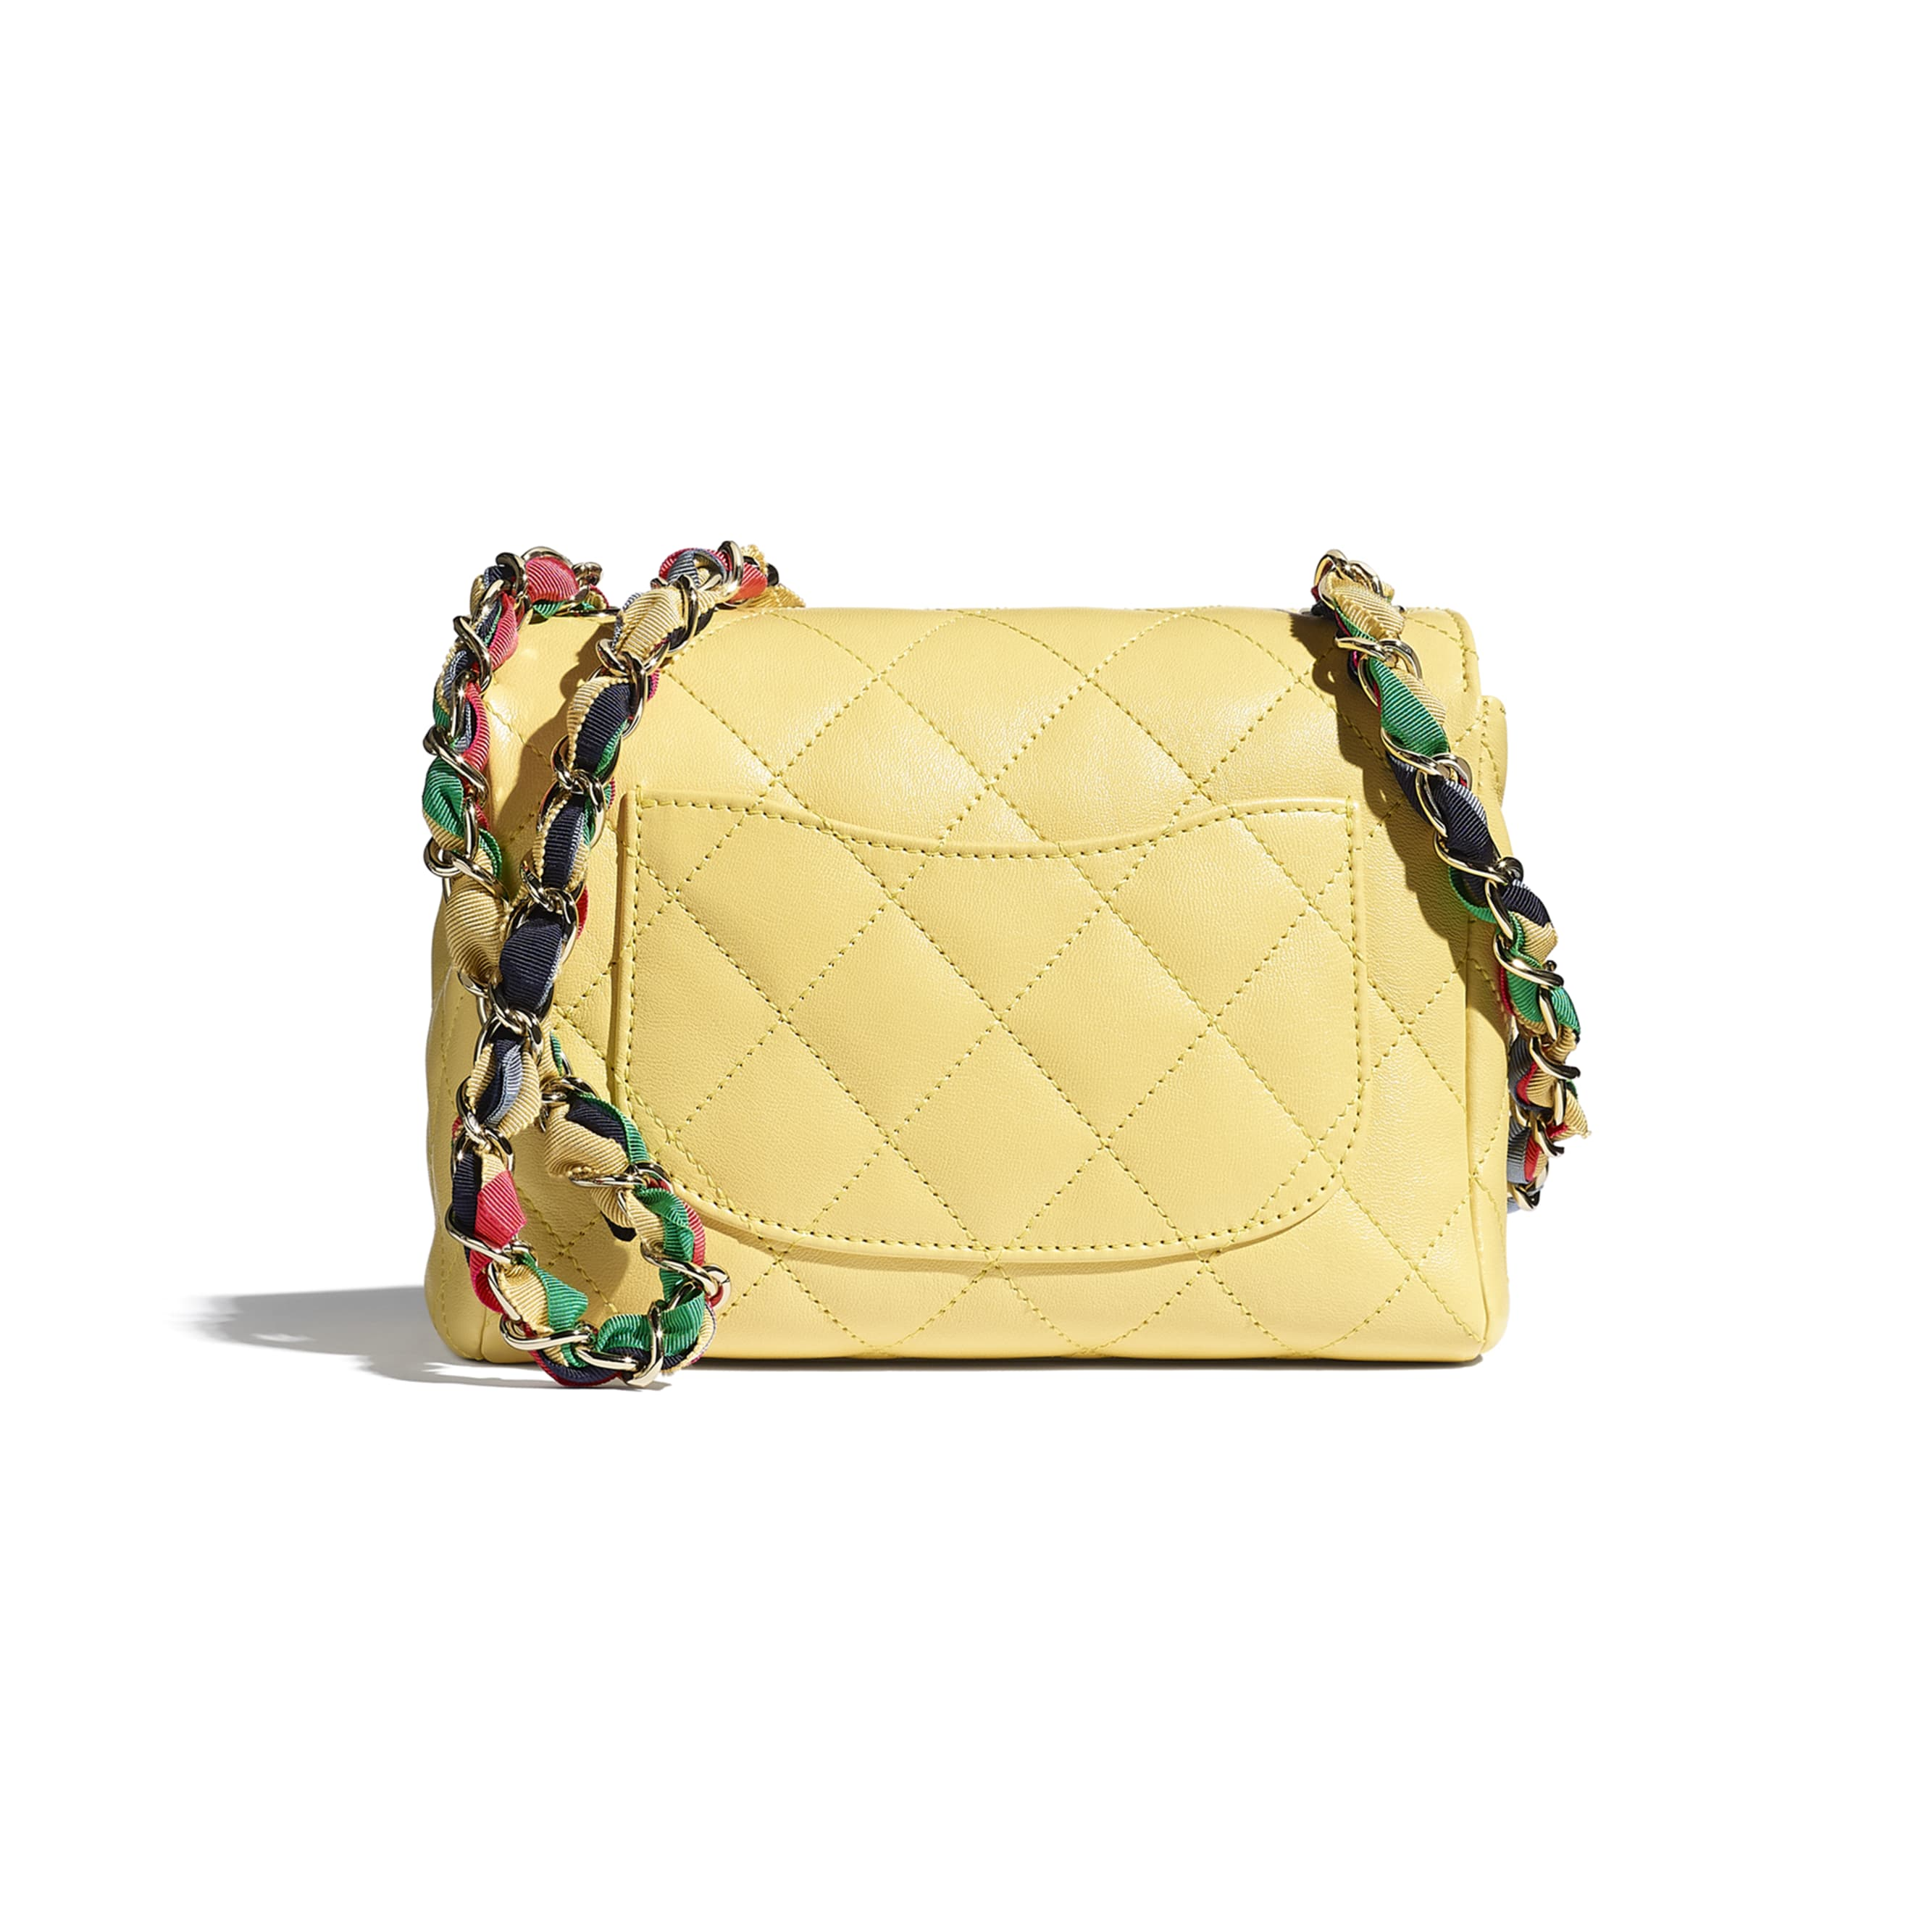 Flap Bag - Yellow - Lambskin, Mixed Fibers & Gold-Tone Metal - CHANEL - Alternative view - see standard sized version